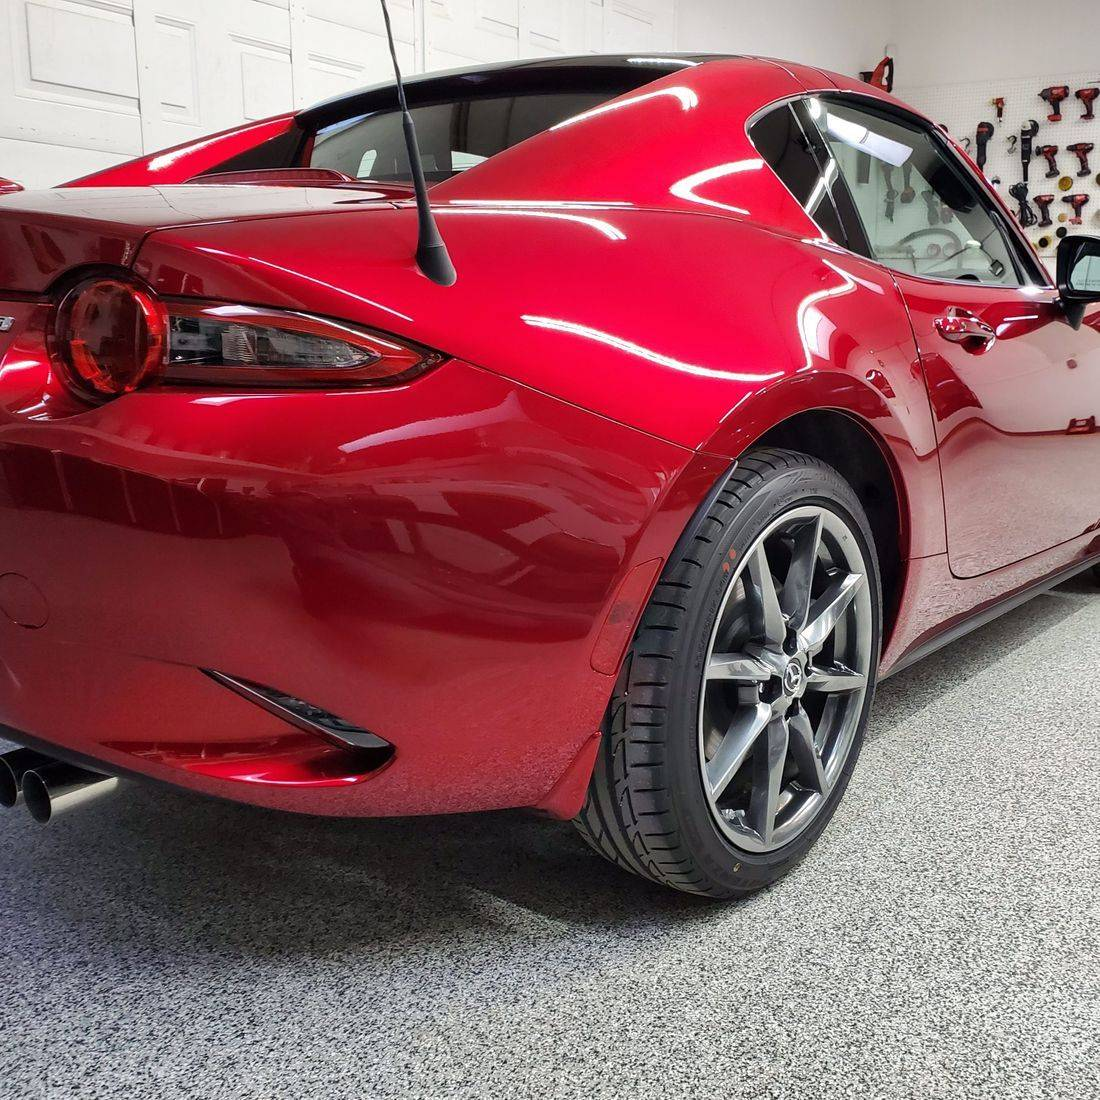 miata ceramic coating mx5